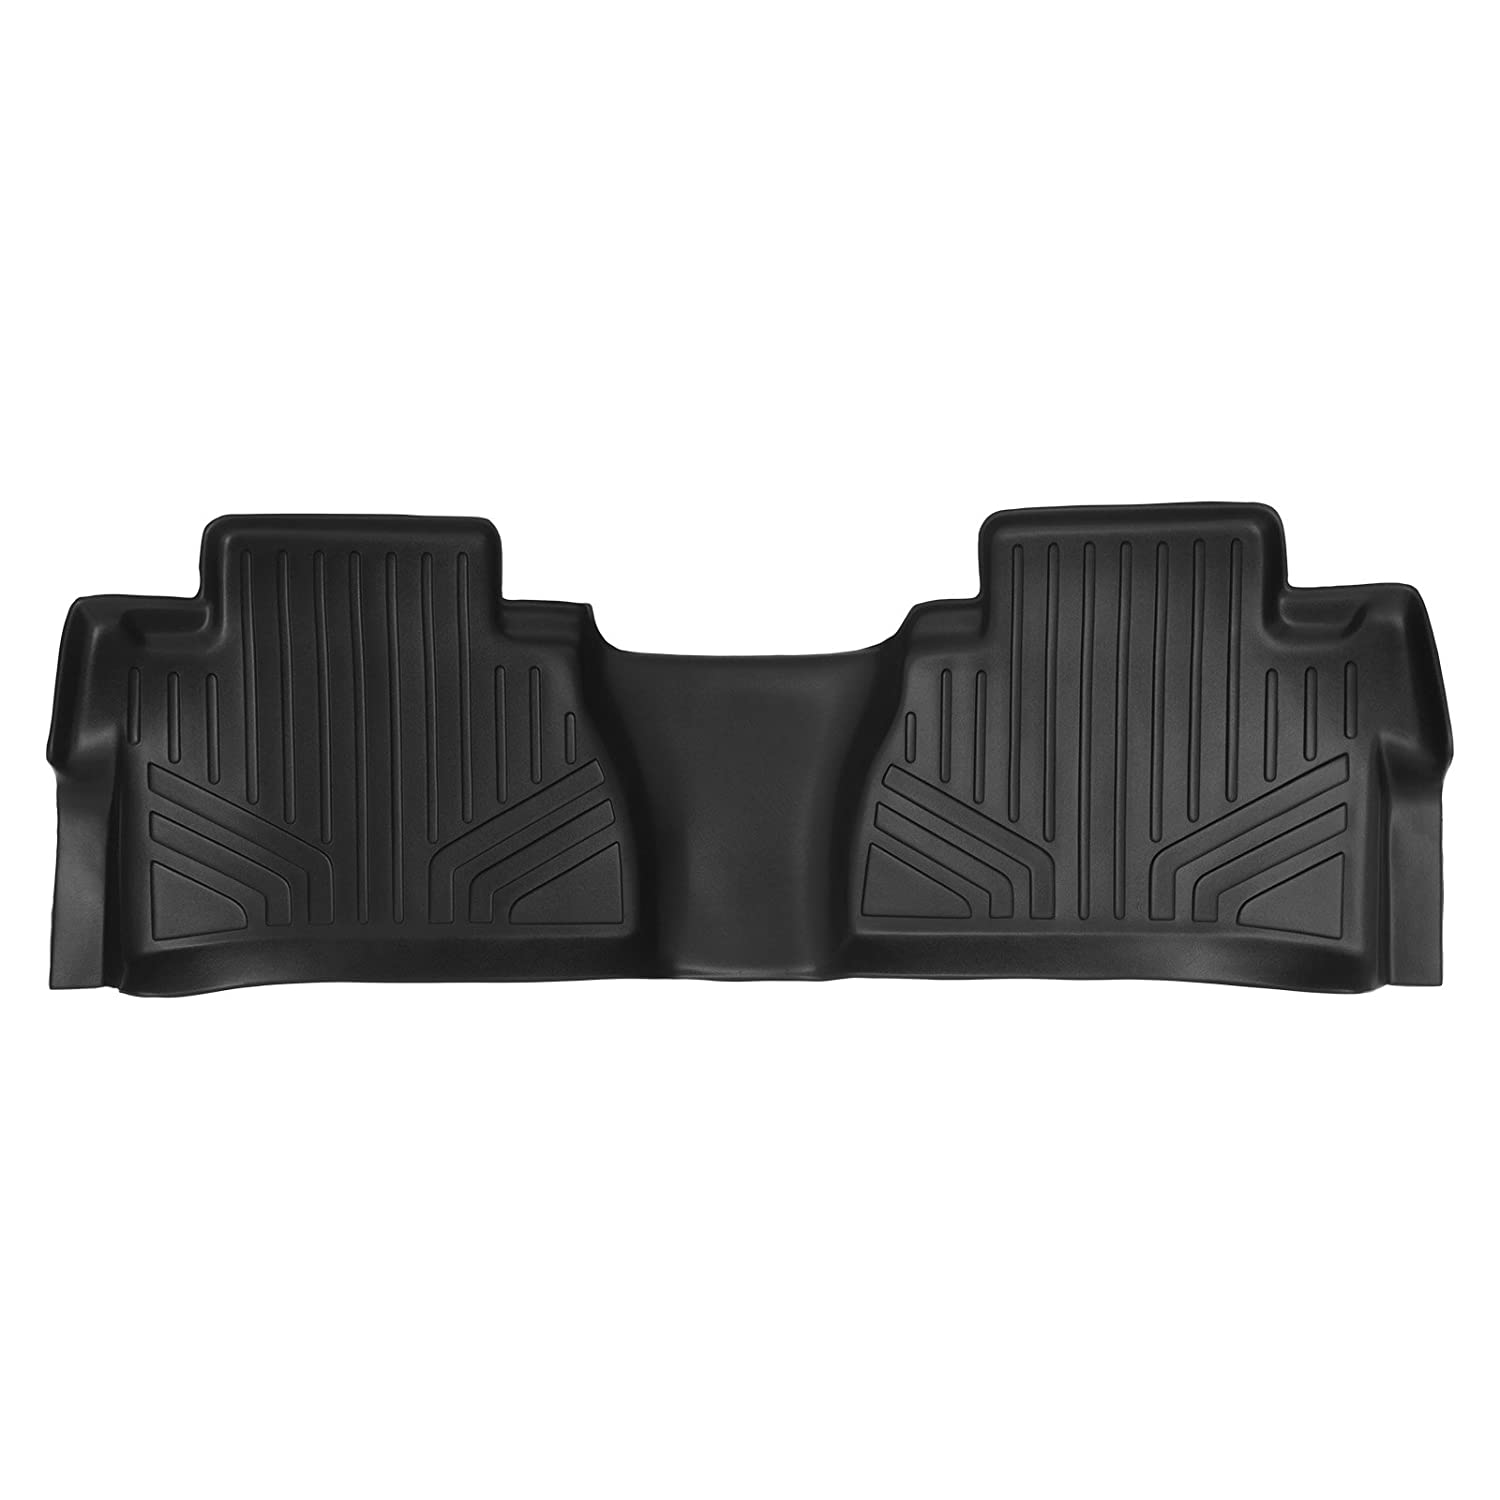 MAX LINER B0146 Custom Fit Floor Mats 2nd Row Liner Black for 2014-2019 Toyota Tundra Double CrewMax Cab